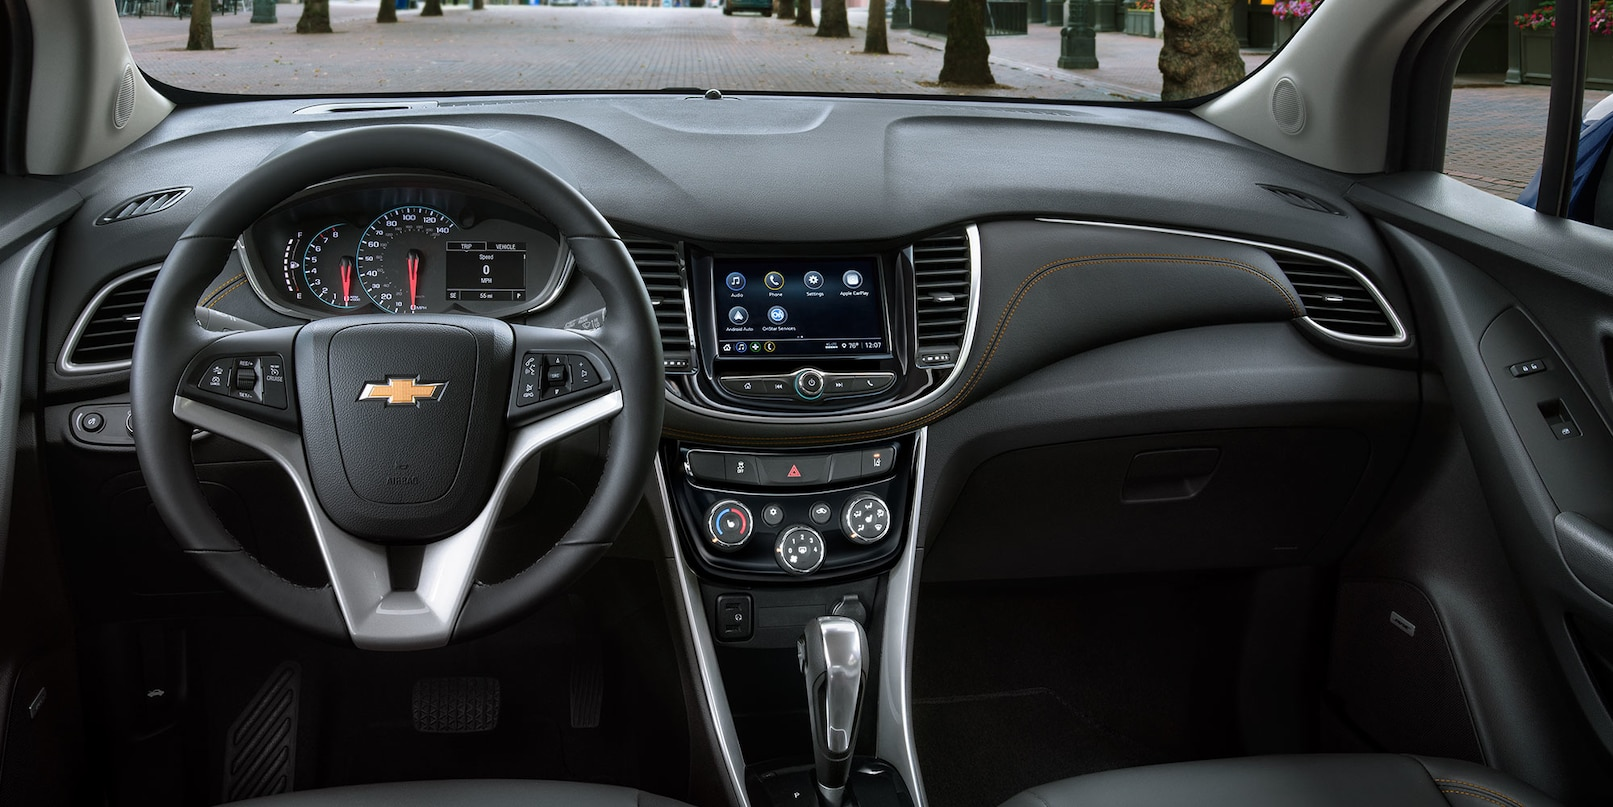 Interior of the 2020 Trax